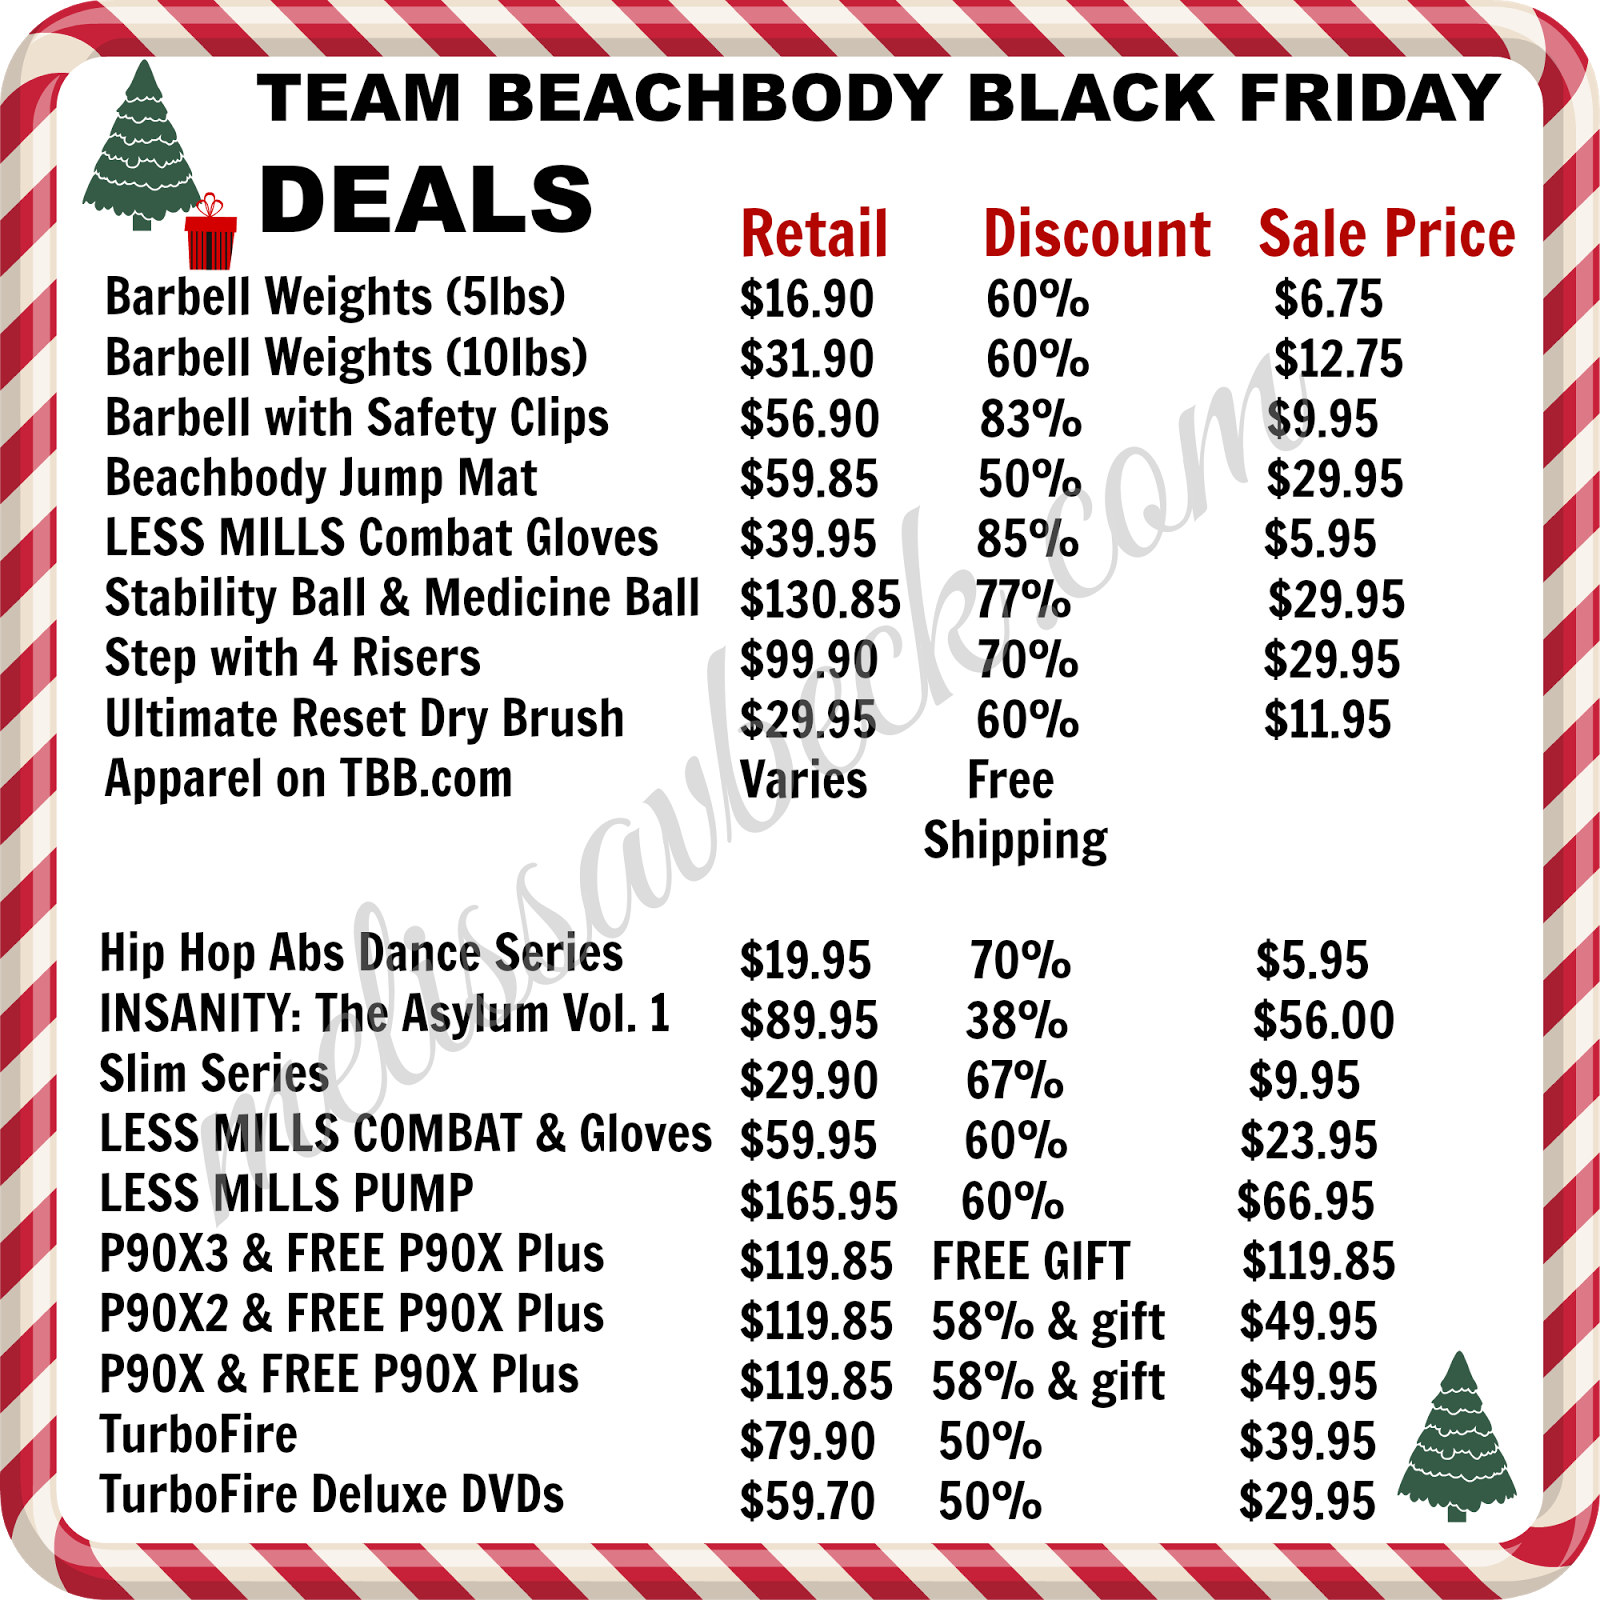 black friday, deals, beach body, P90x3, shaun t, insanity, turbo fire, weight loss, exercise, fitness, shakeology